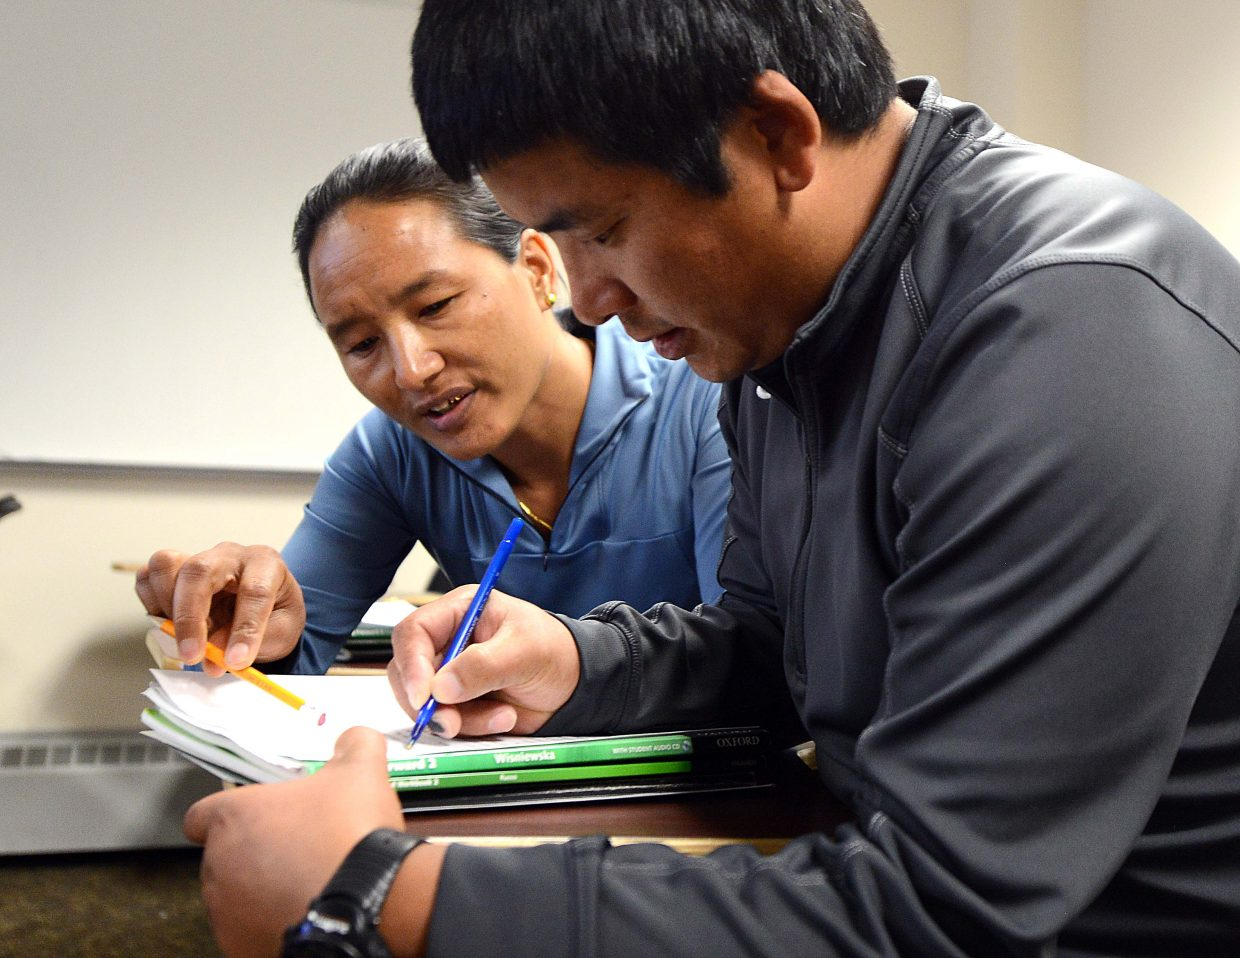 Chhiring Dorje Sherpa and Dawa Phuti Sherpa have said at times it's difficult living so far from their native land, but they're doing what they can to assimilate, including taking twice-weekly English lessons at Colorado Mountain College.